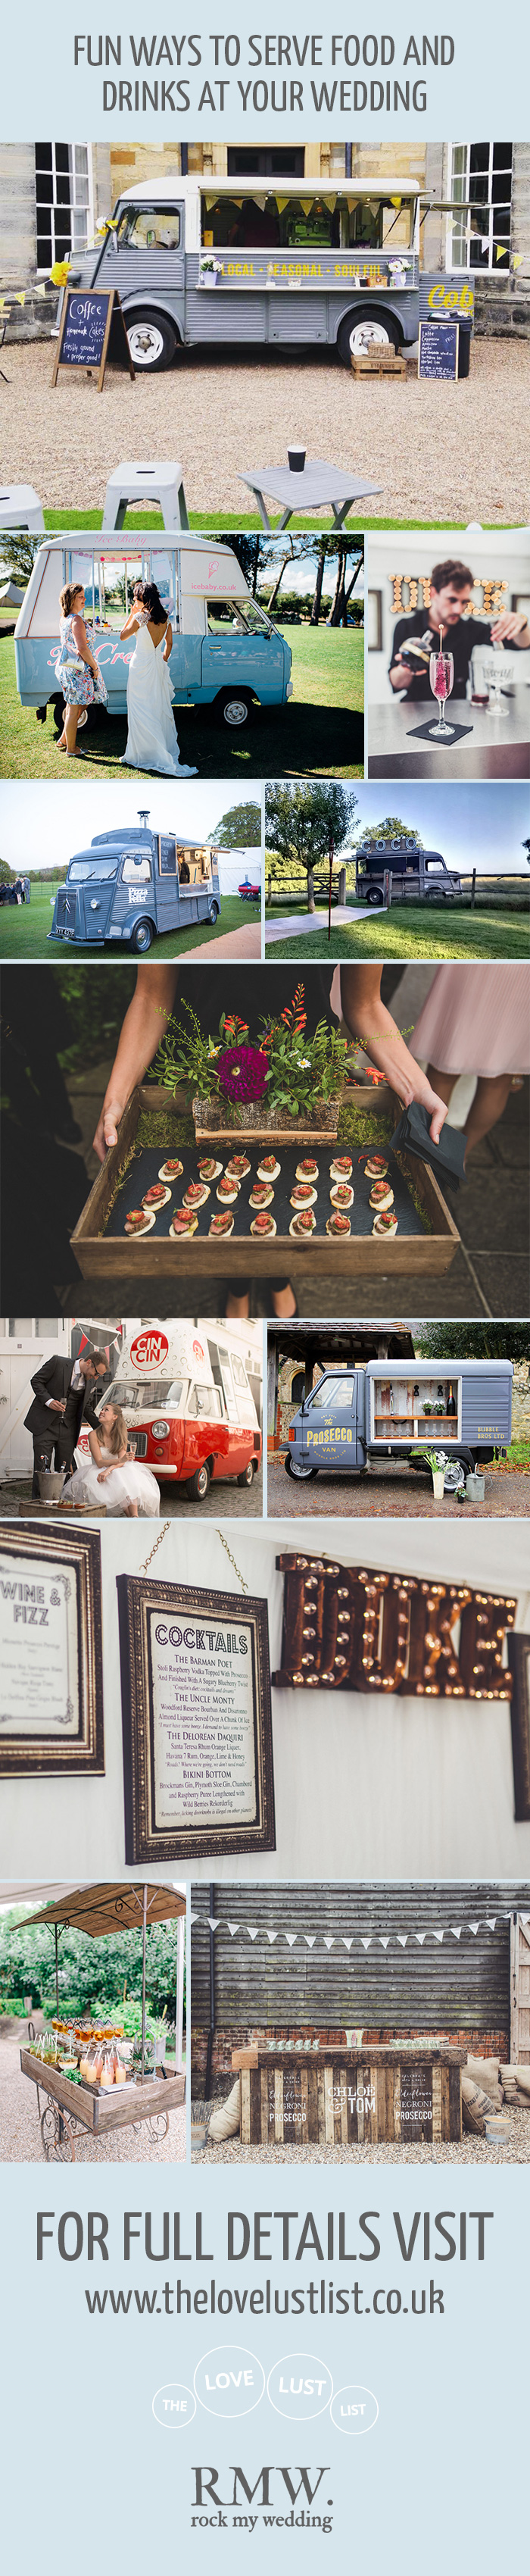 Fun Ways To Serve Wedding Food